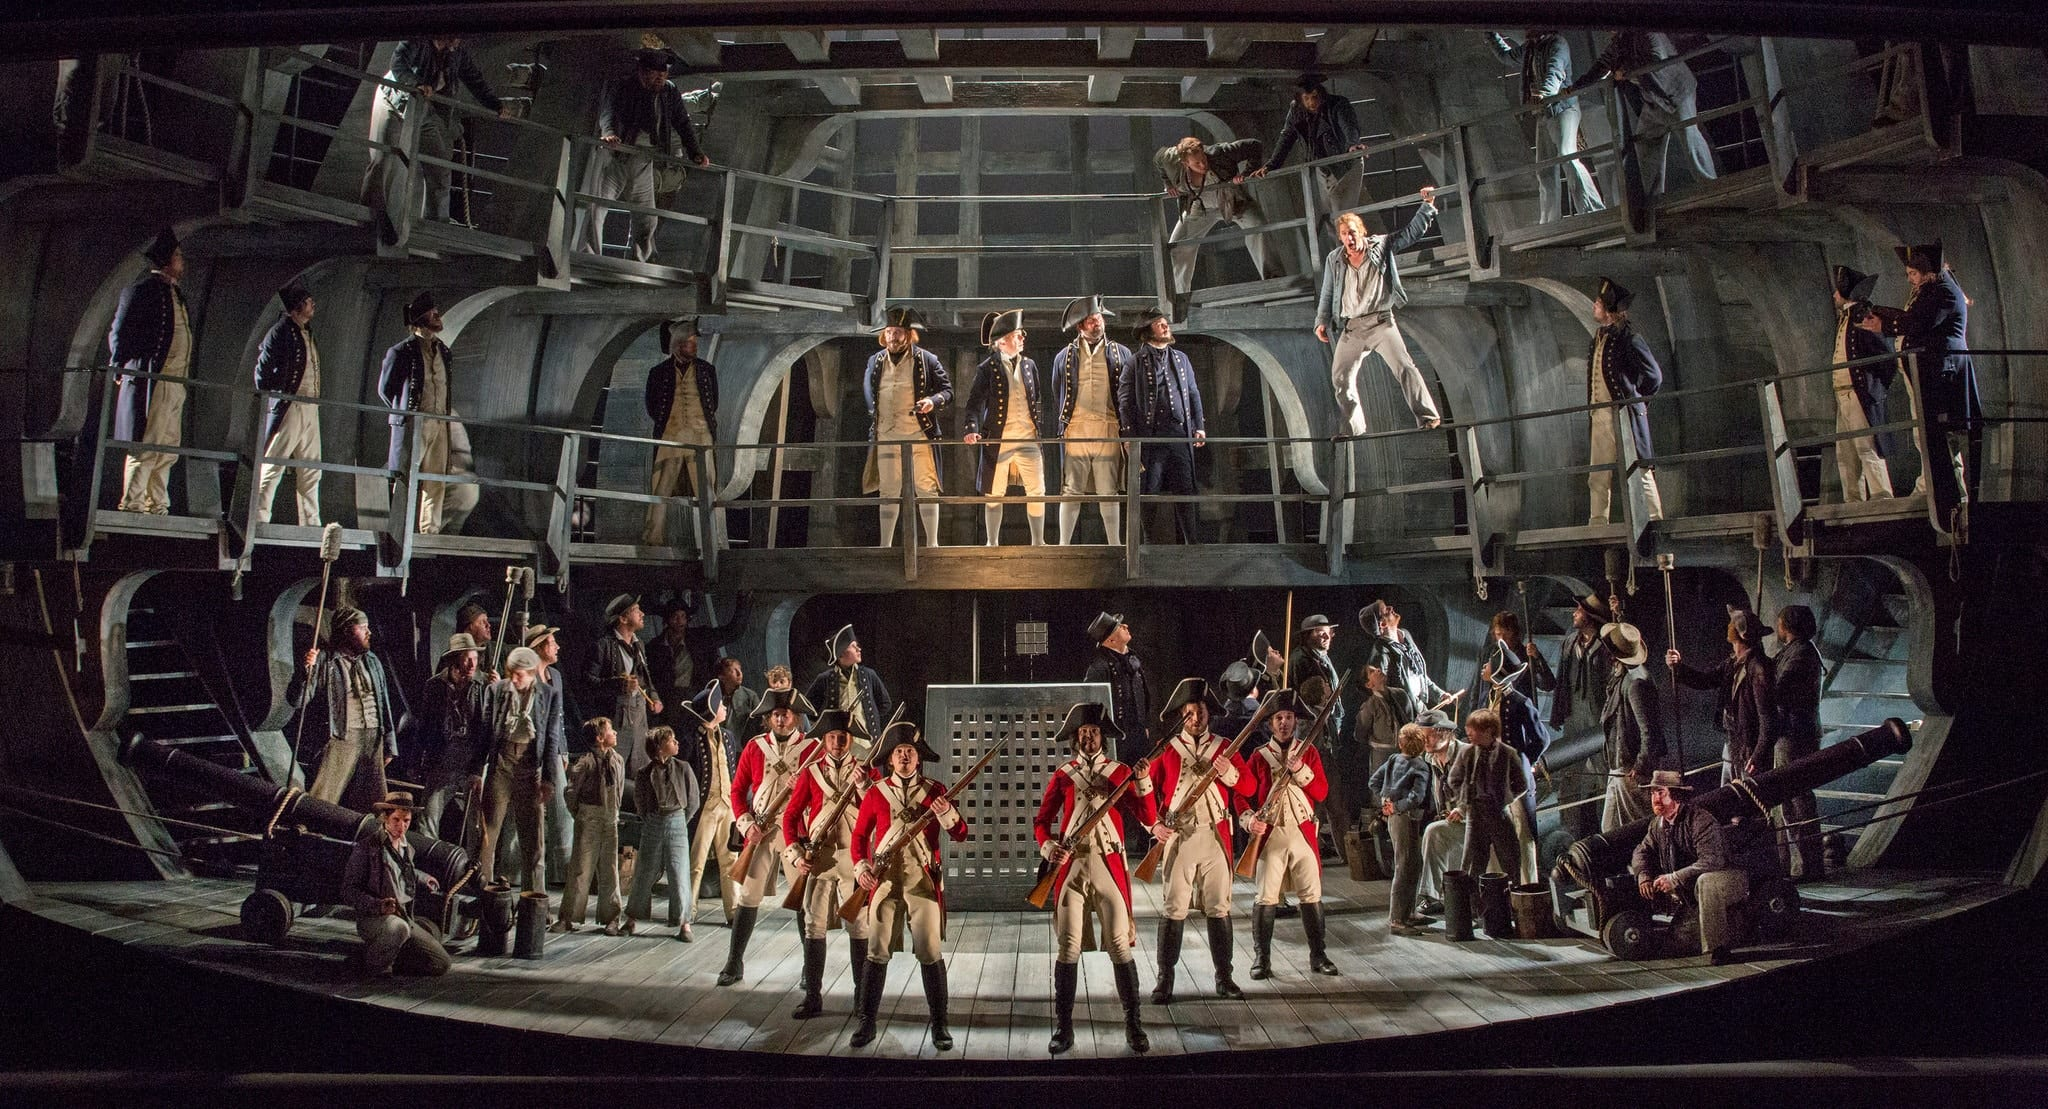 Two Opera Companies Find New Resonance in the Seafaring Drama 'Billy Budd'